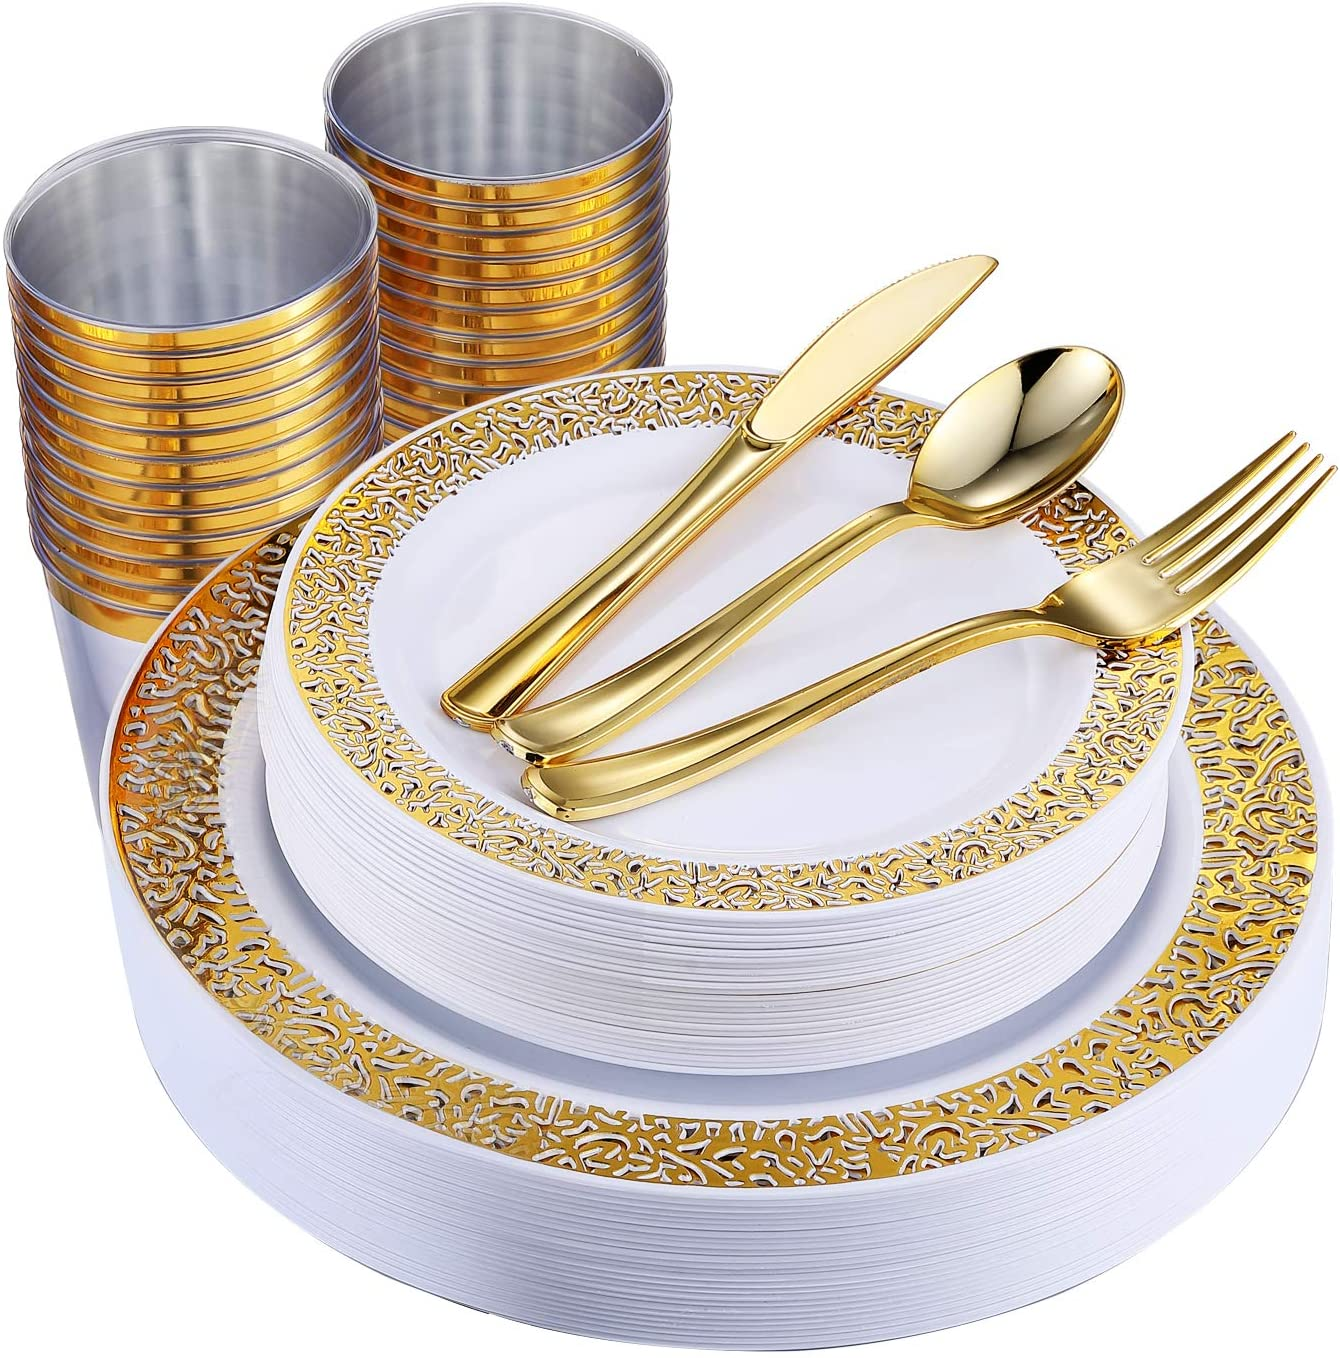 150 Piece Gold Same day shipping Dinnerware Set P National uniform free shipping Disposable Lace Elegant Plastic